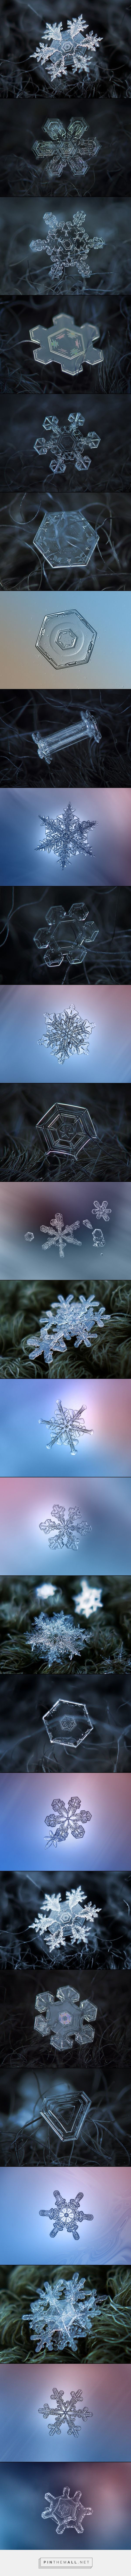 27 Amazing Macro Snowflake Images Shot with a DIY Camera Set Up - created via http://pinthemall.net